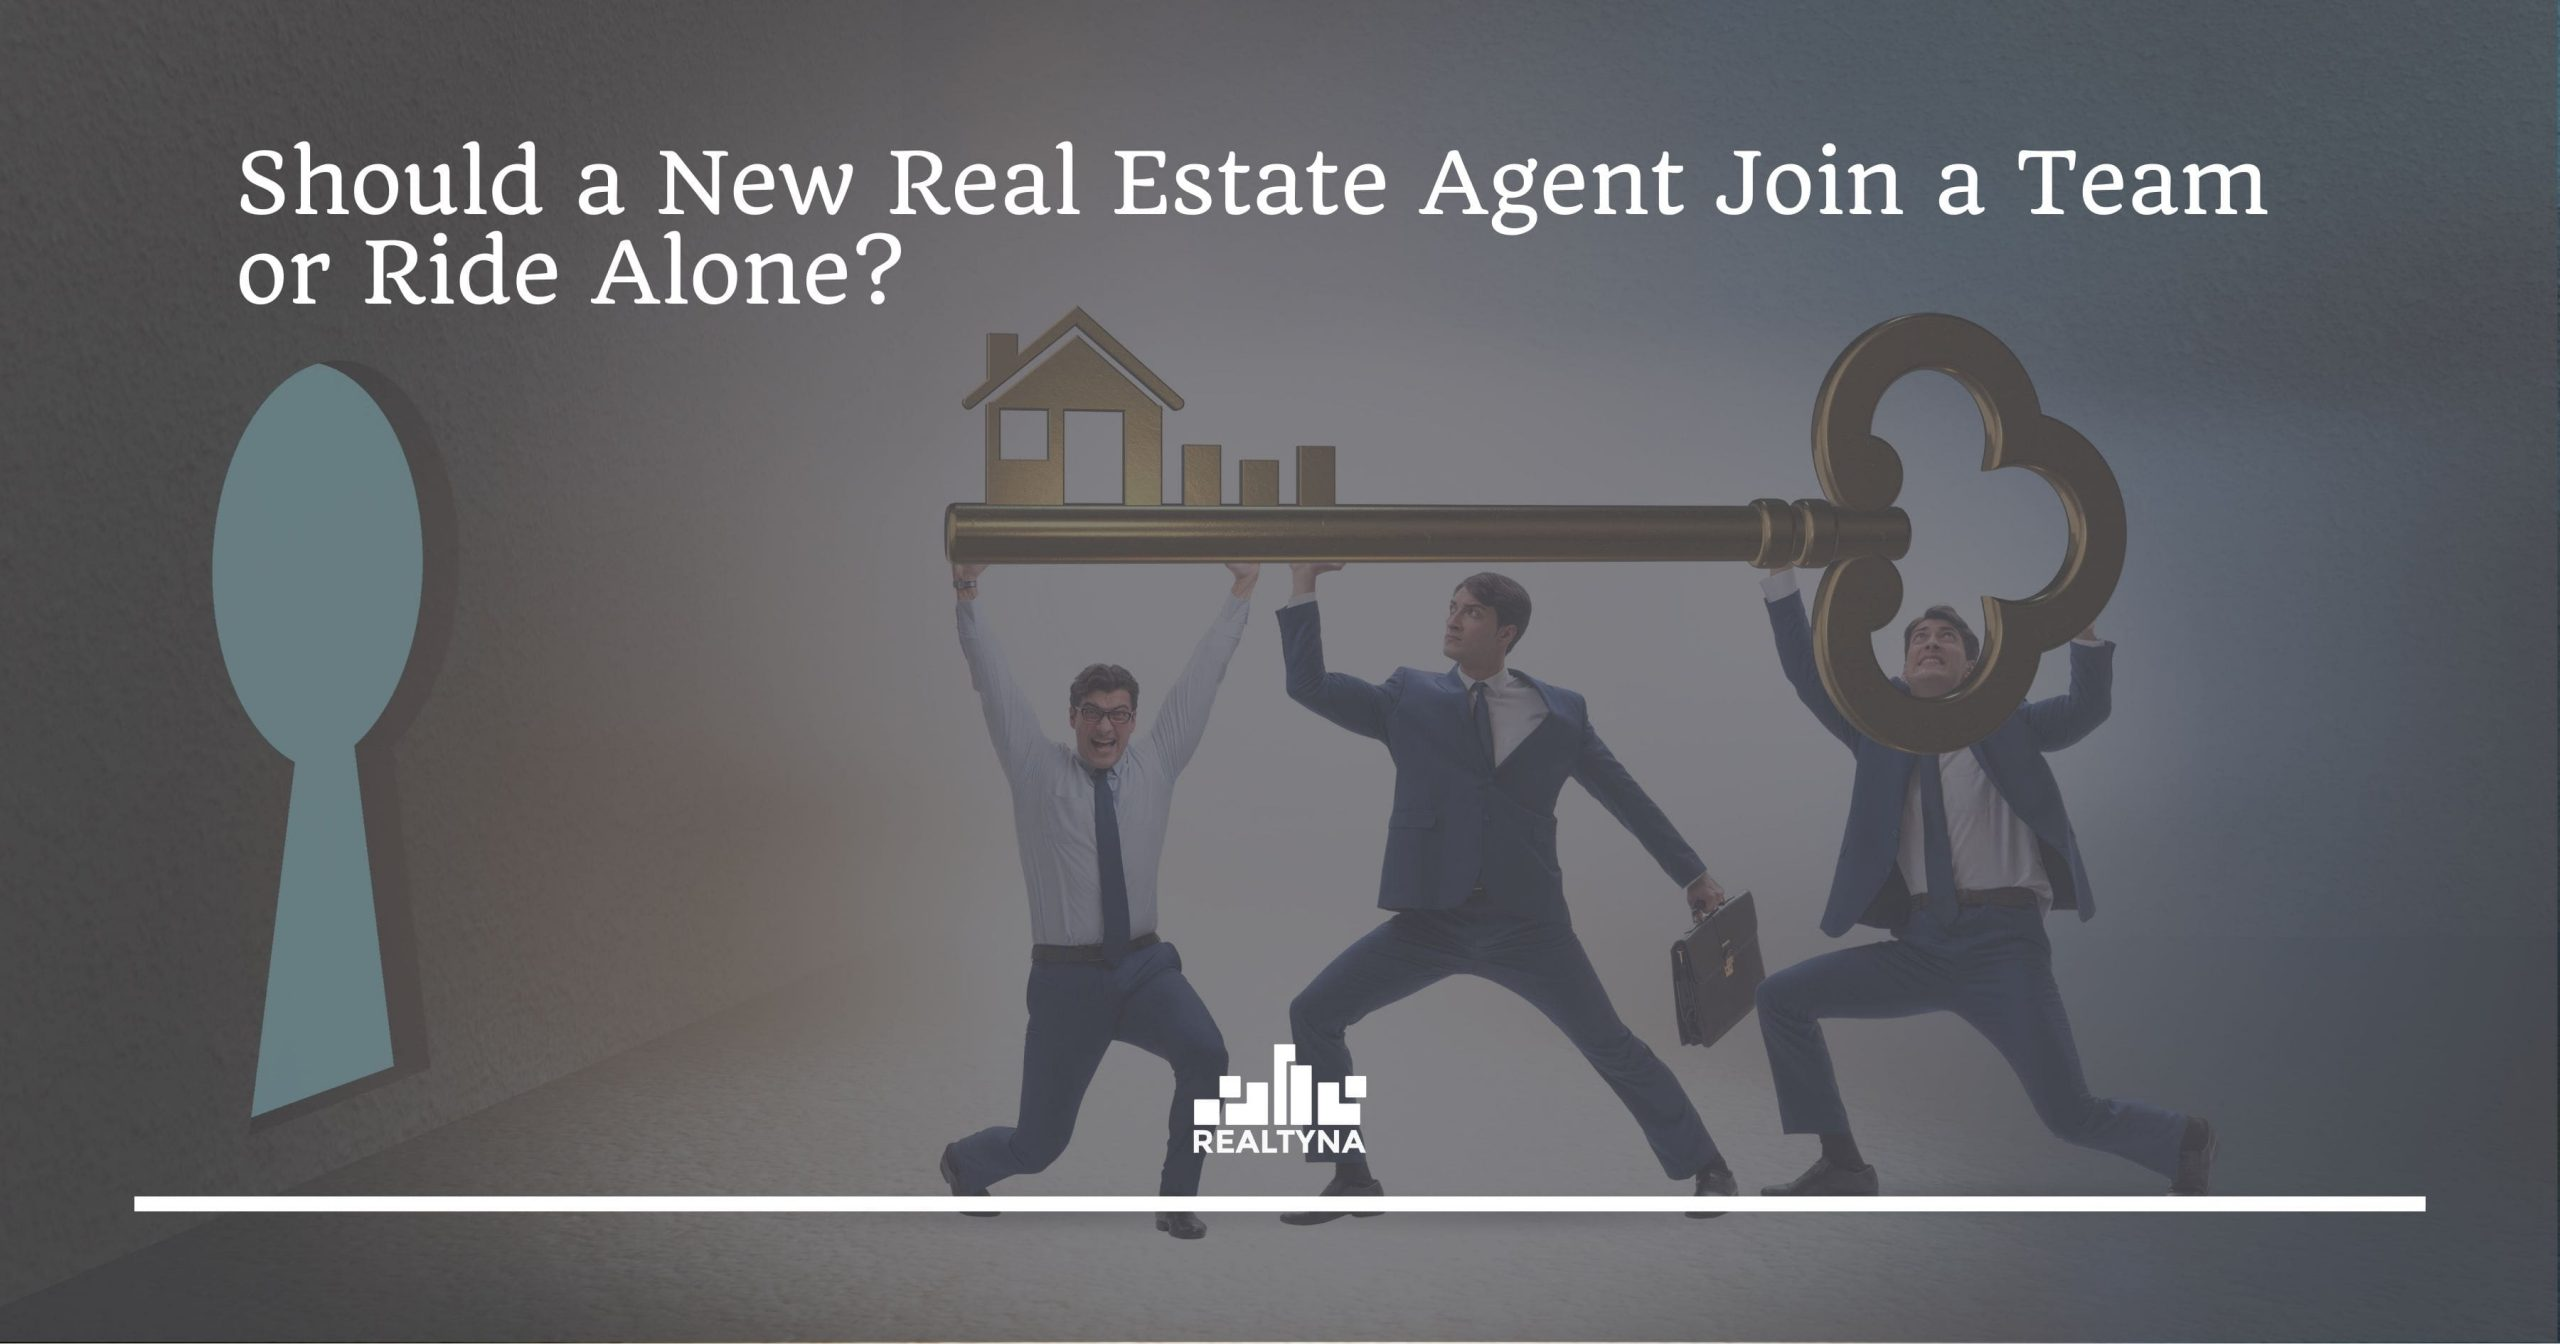 Should a New Real Estate Agent Join a Team or Ride Alone?